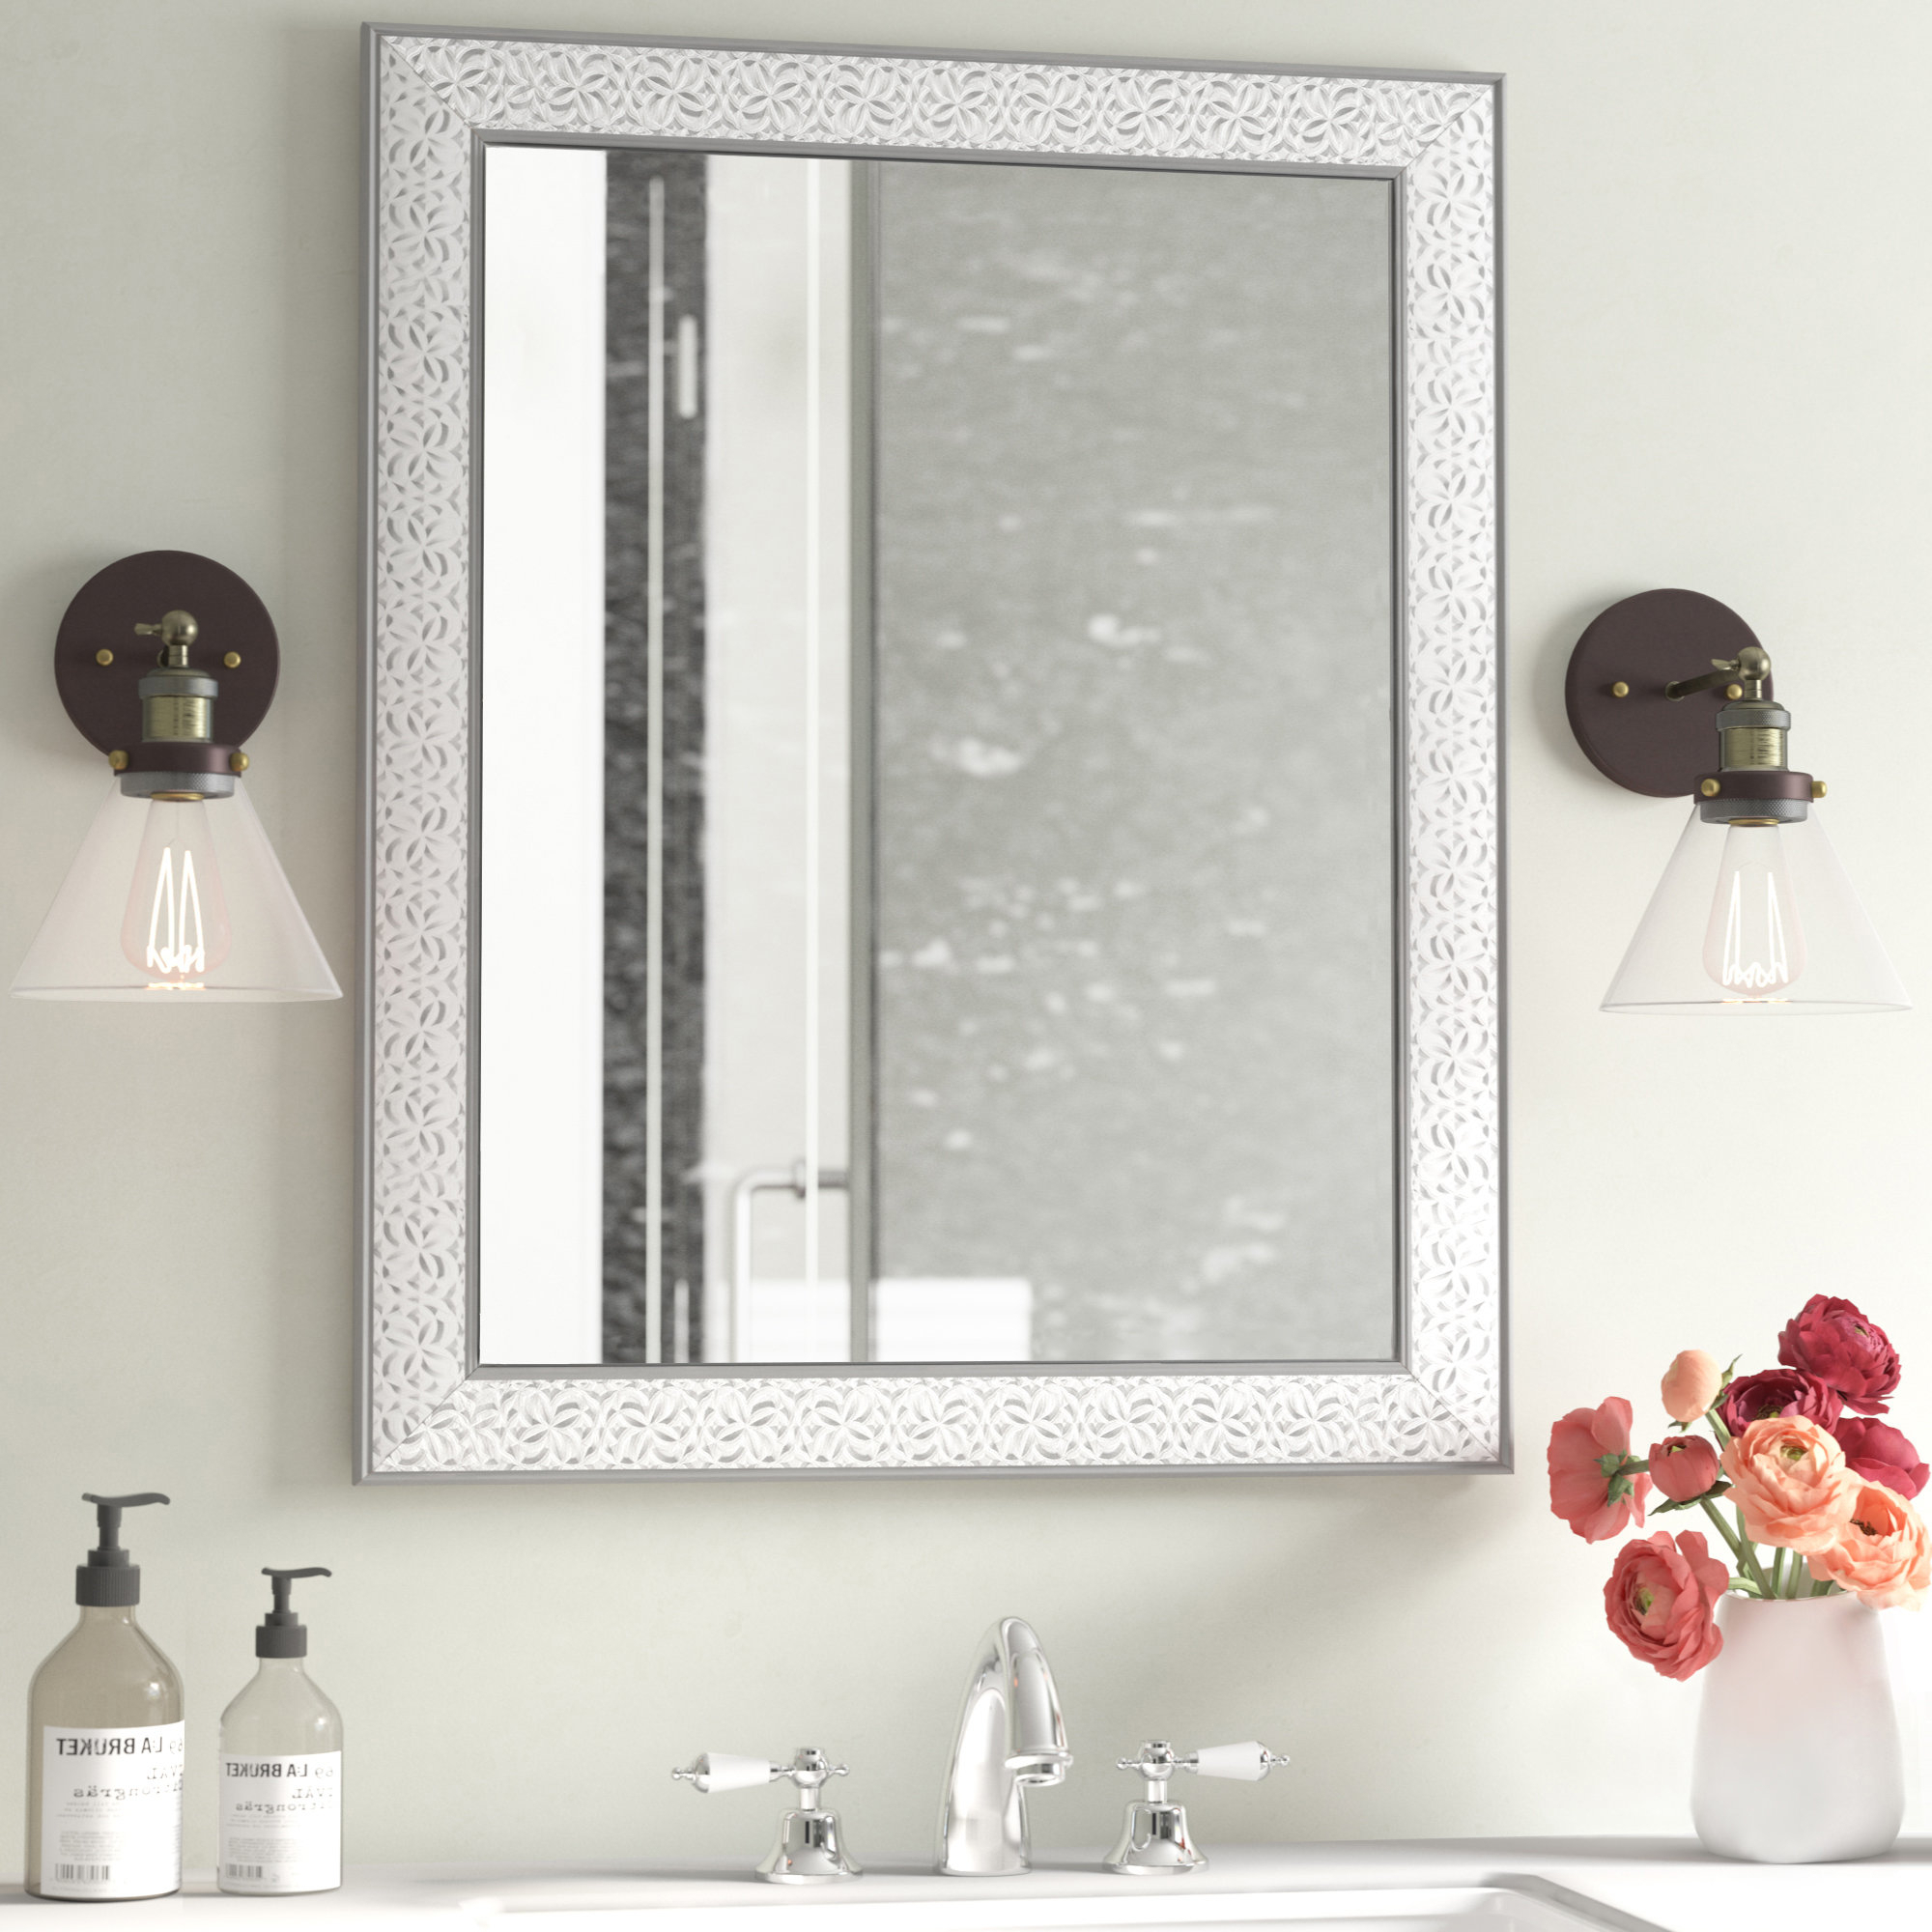 Modern & Contemporary Beveled Wall Mirrors Pertaining To Best And Newest Encanto Modern & Contemporary Beveled Bathroom/vanity Mirror (View 11 of 20)